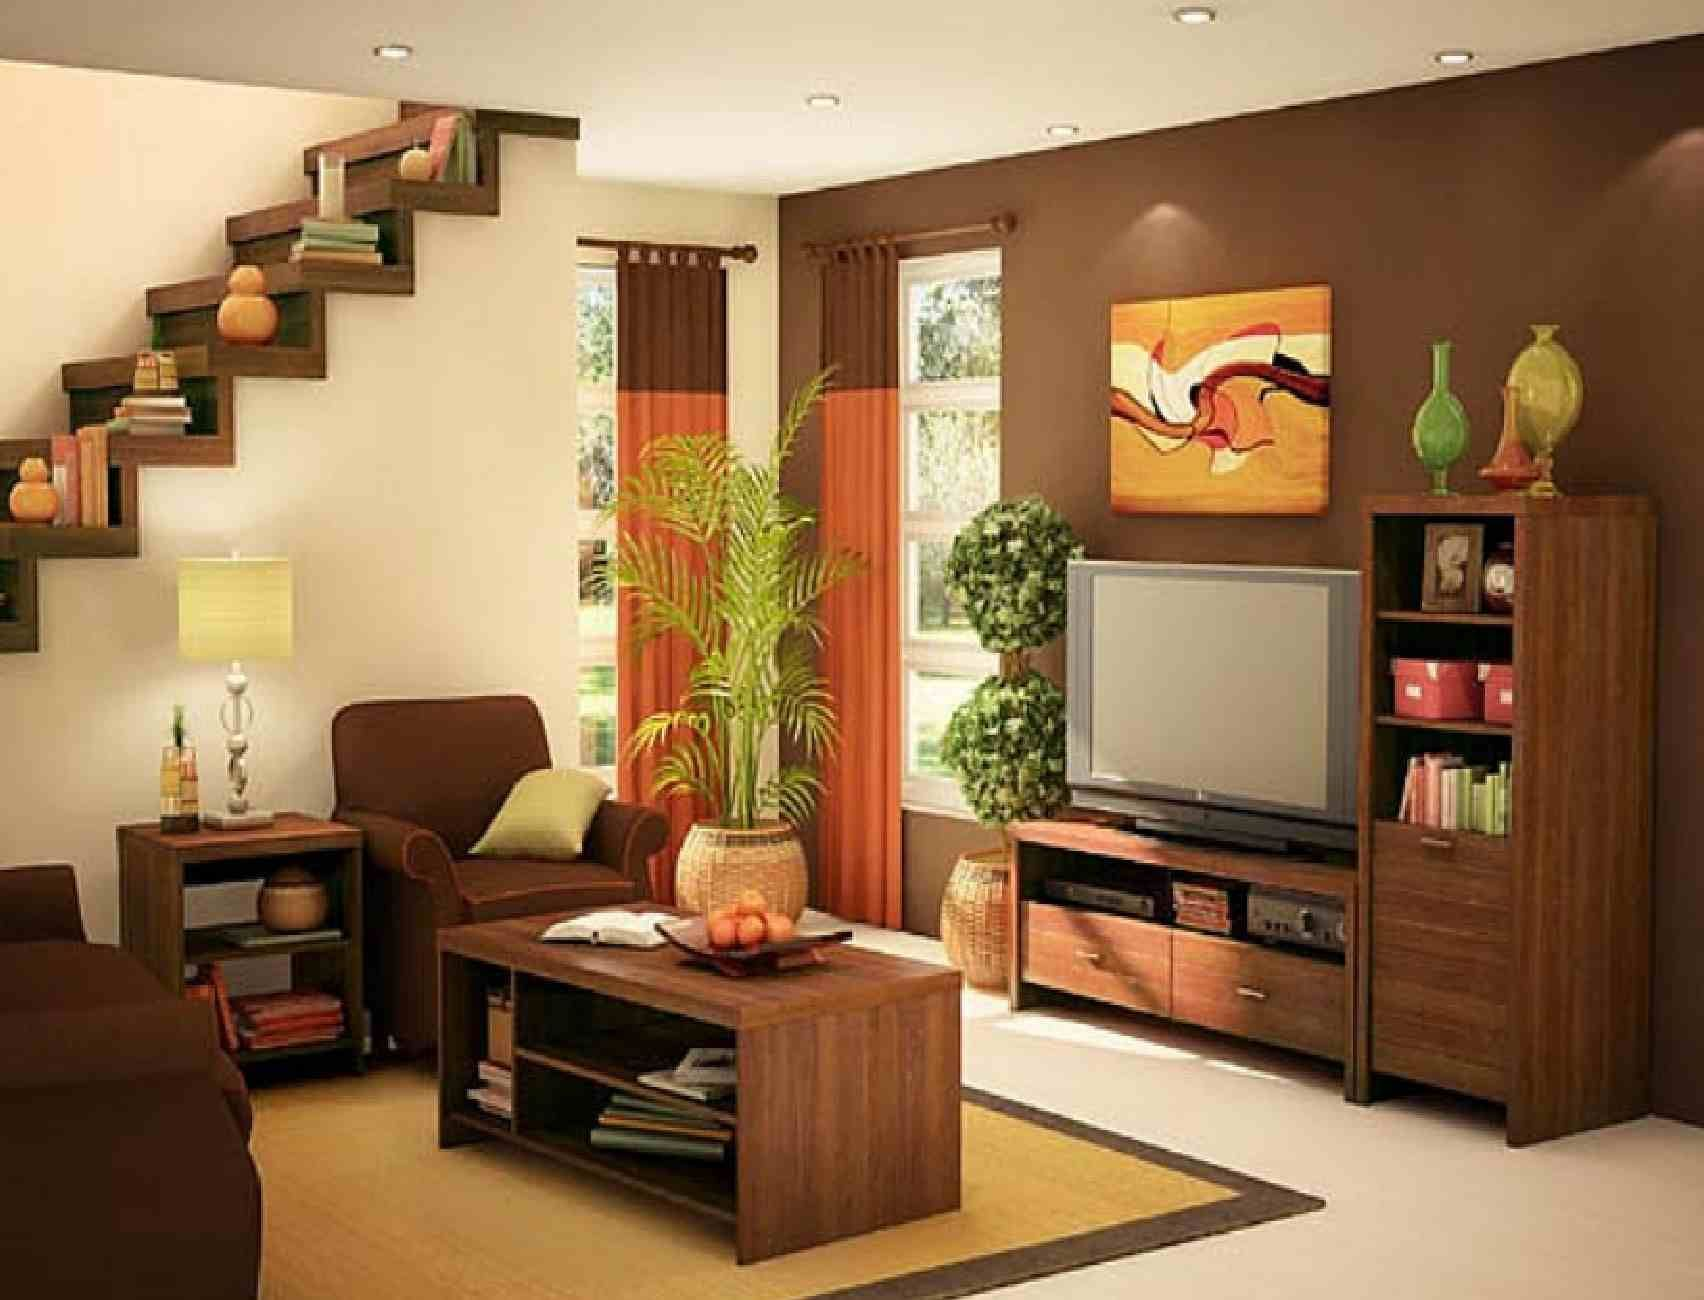 Living Room In Chennai In 2020 Simple House Interior Design Simple Living Room Simple Living Room Designs